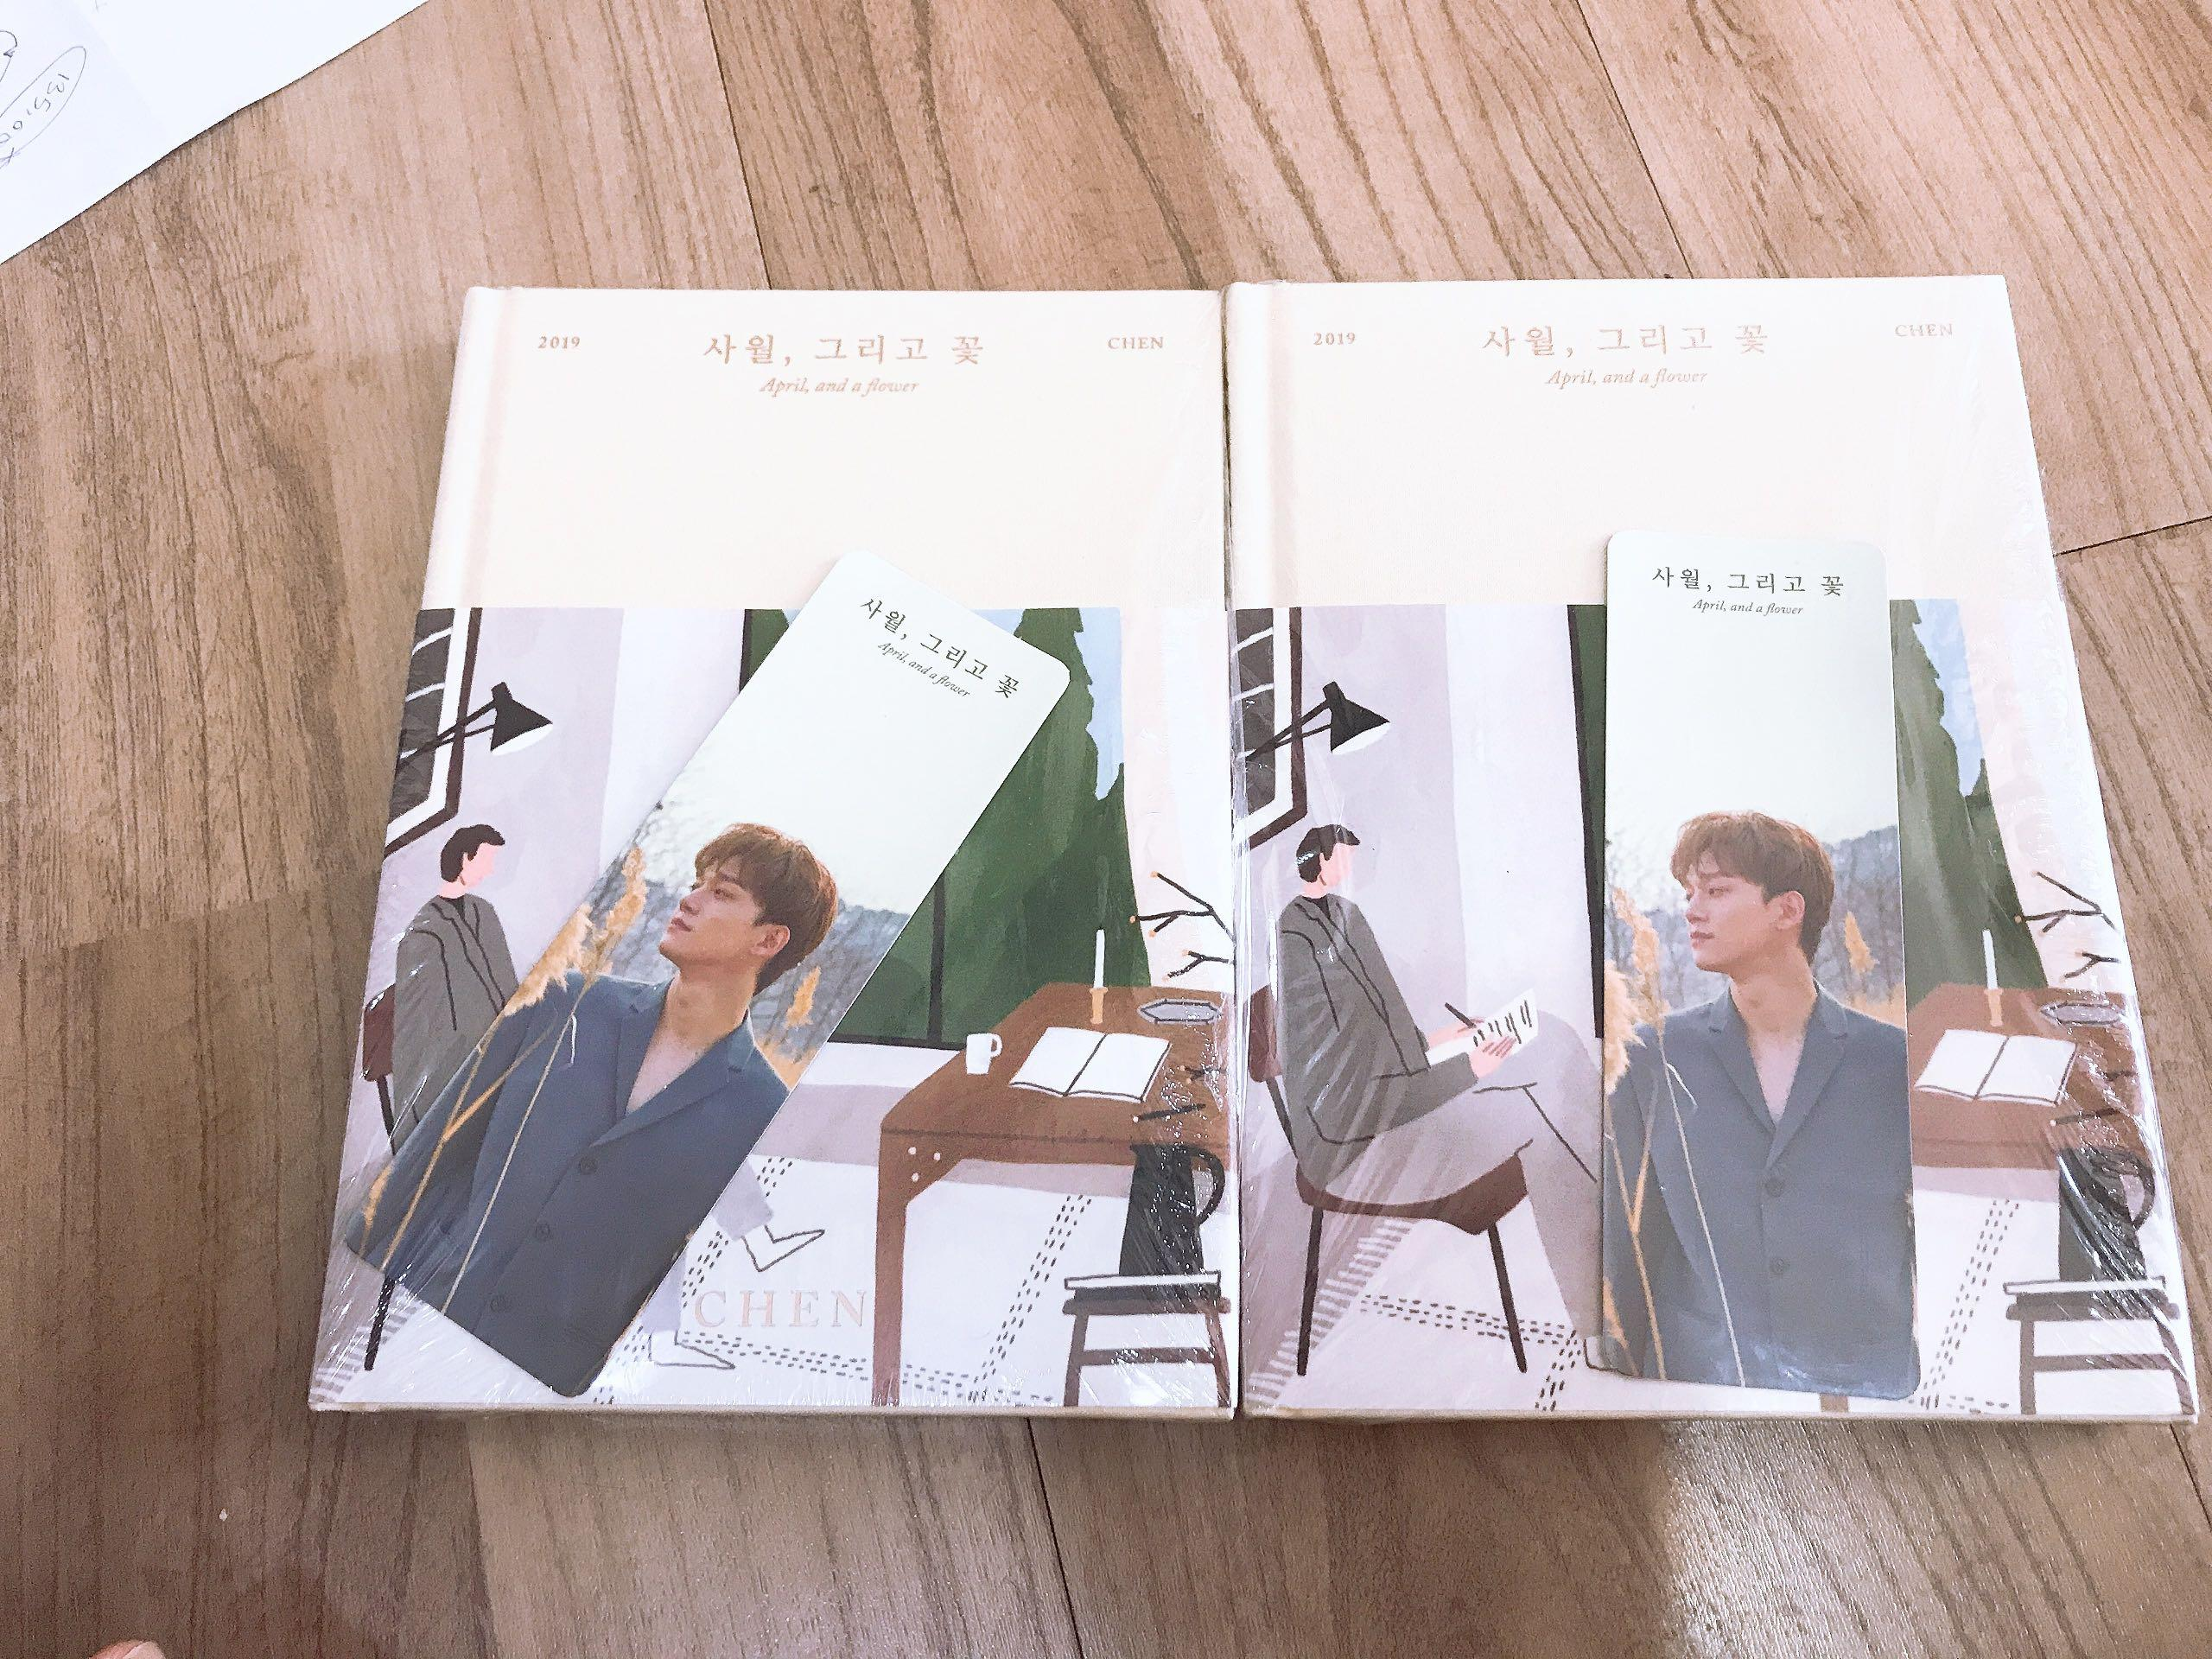 EXO CHEN SOLO ALBUM APRIL AND A FLOWER (FLOWER VERSION) + bookmark